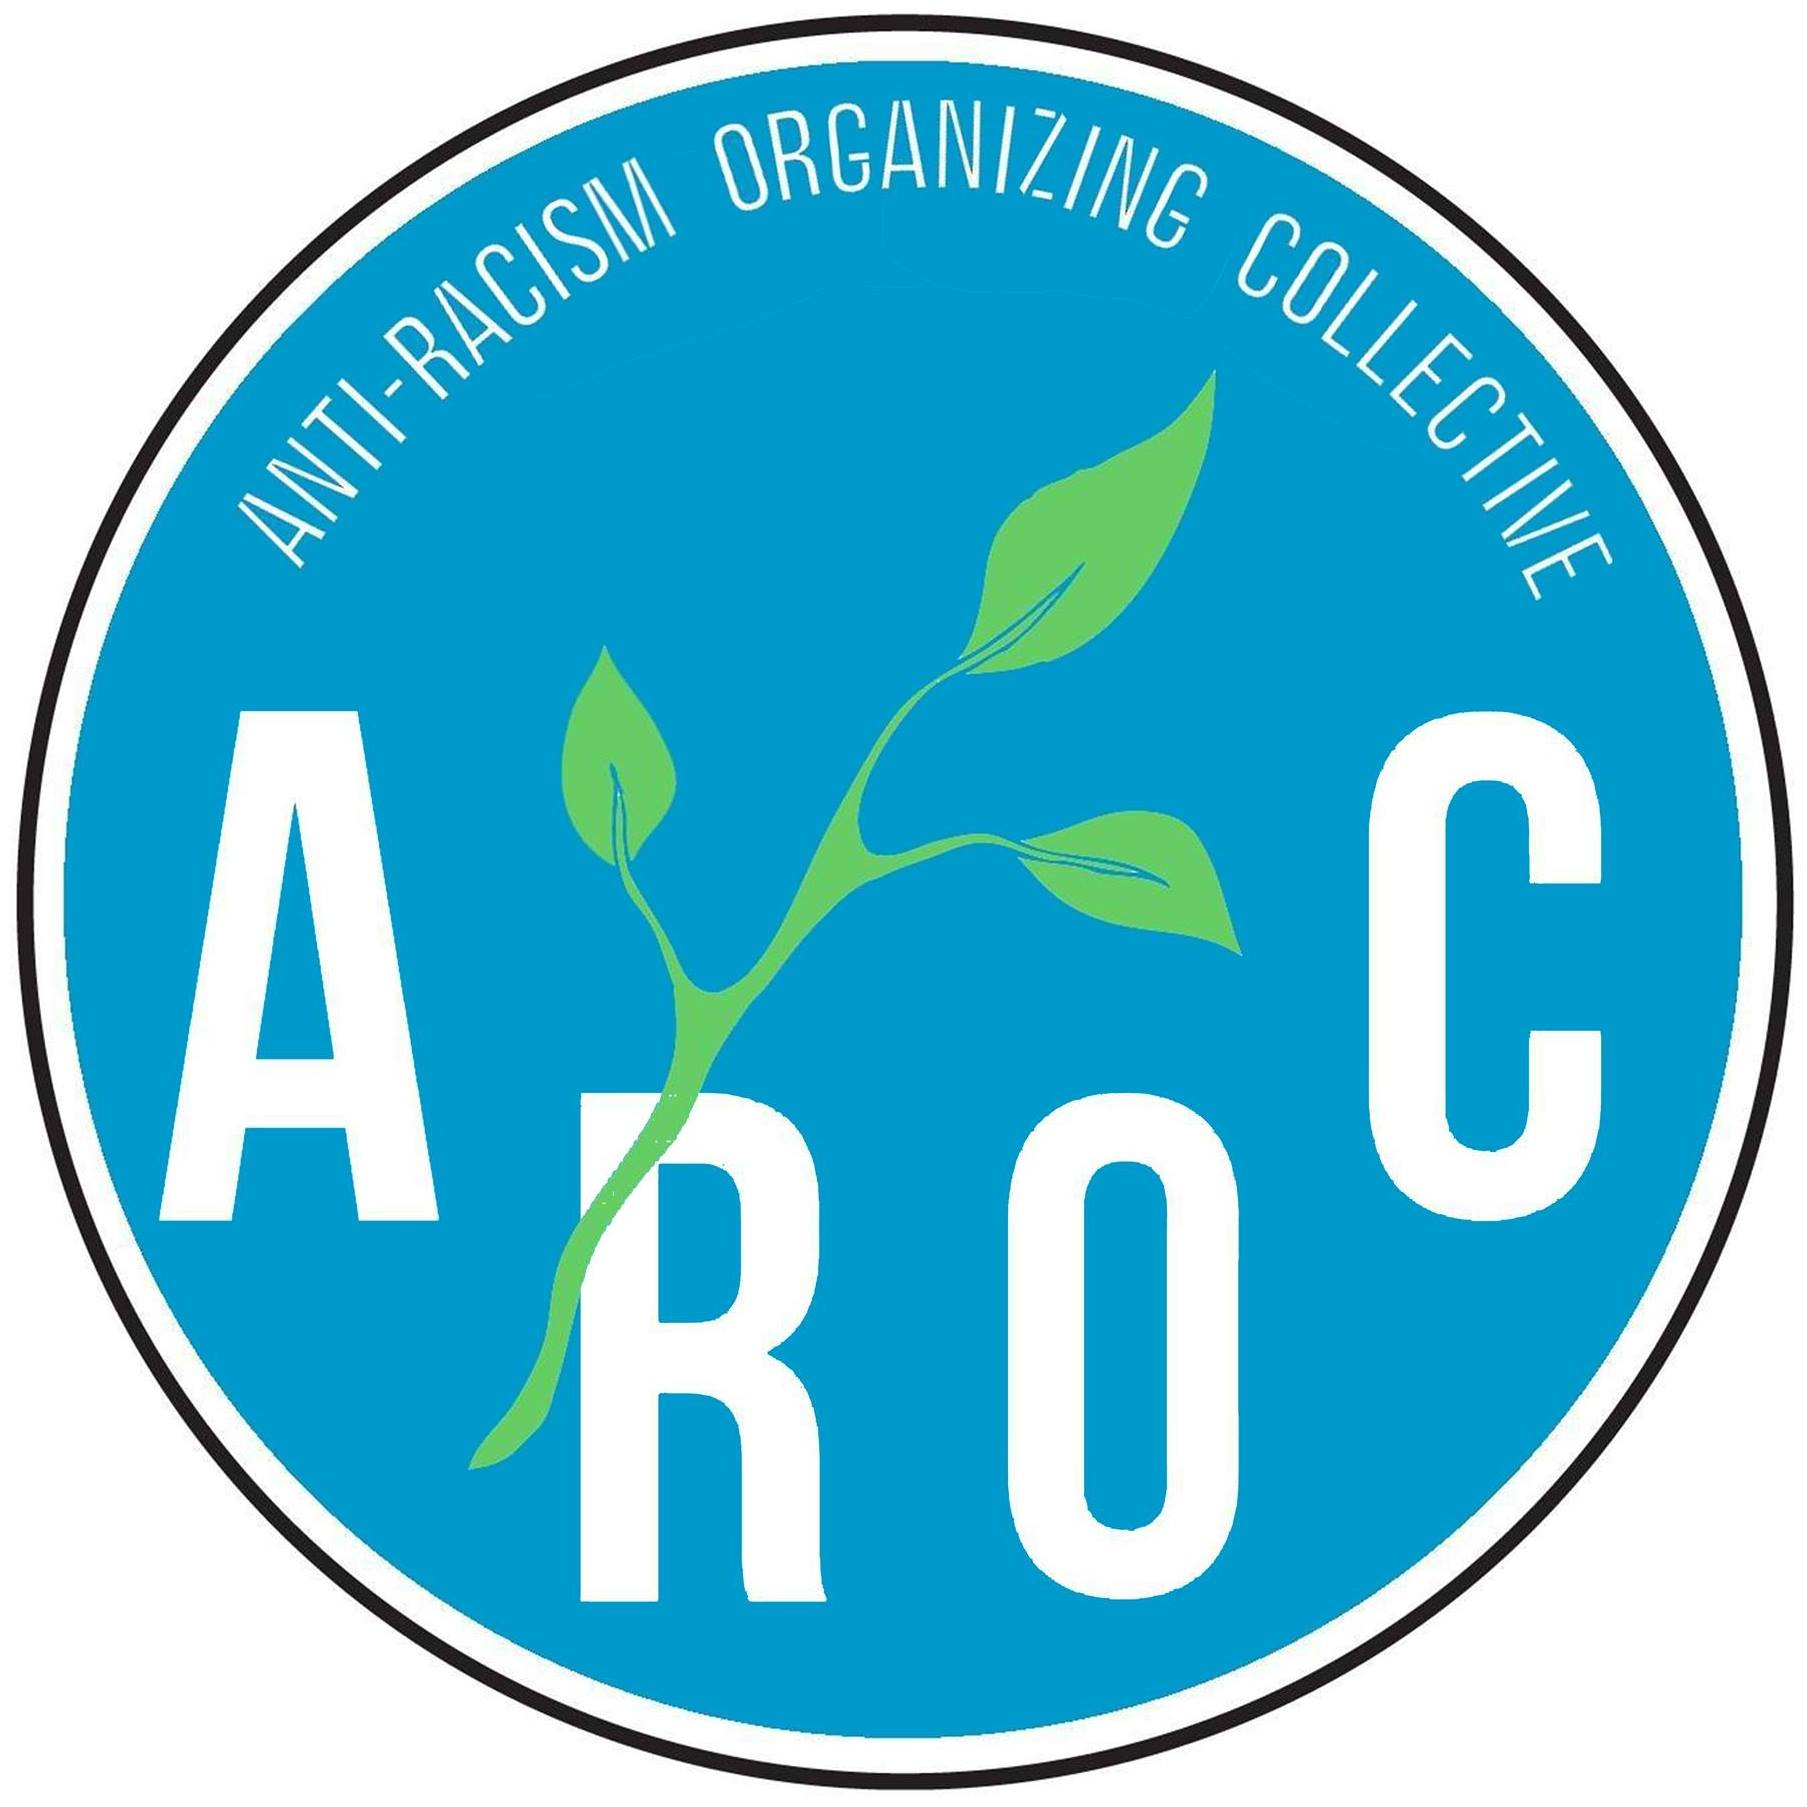 St. Louis's Anti-Racism Organizing Collective